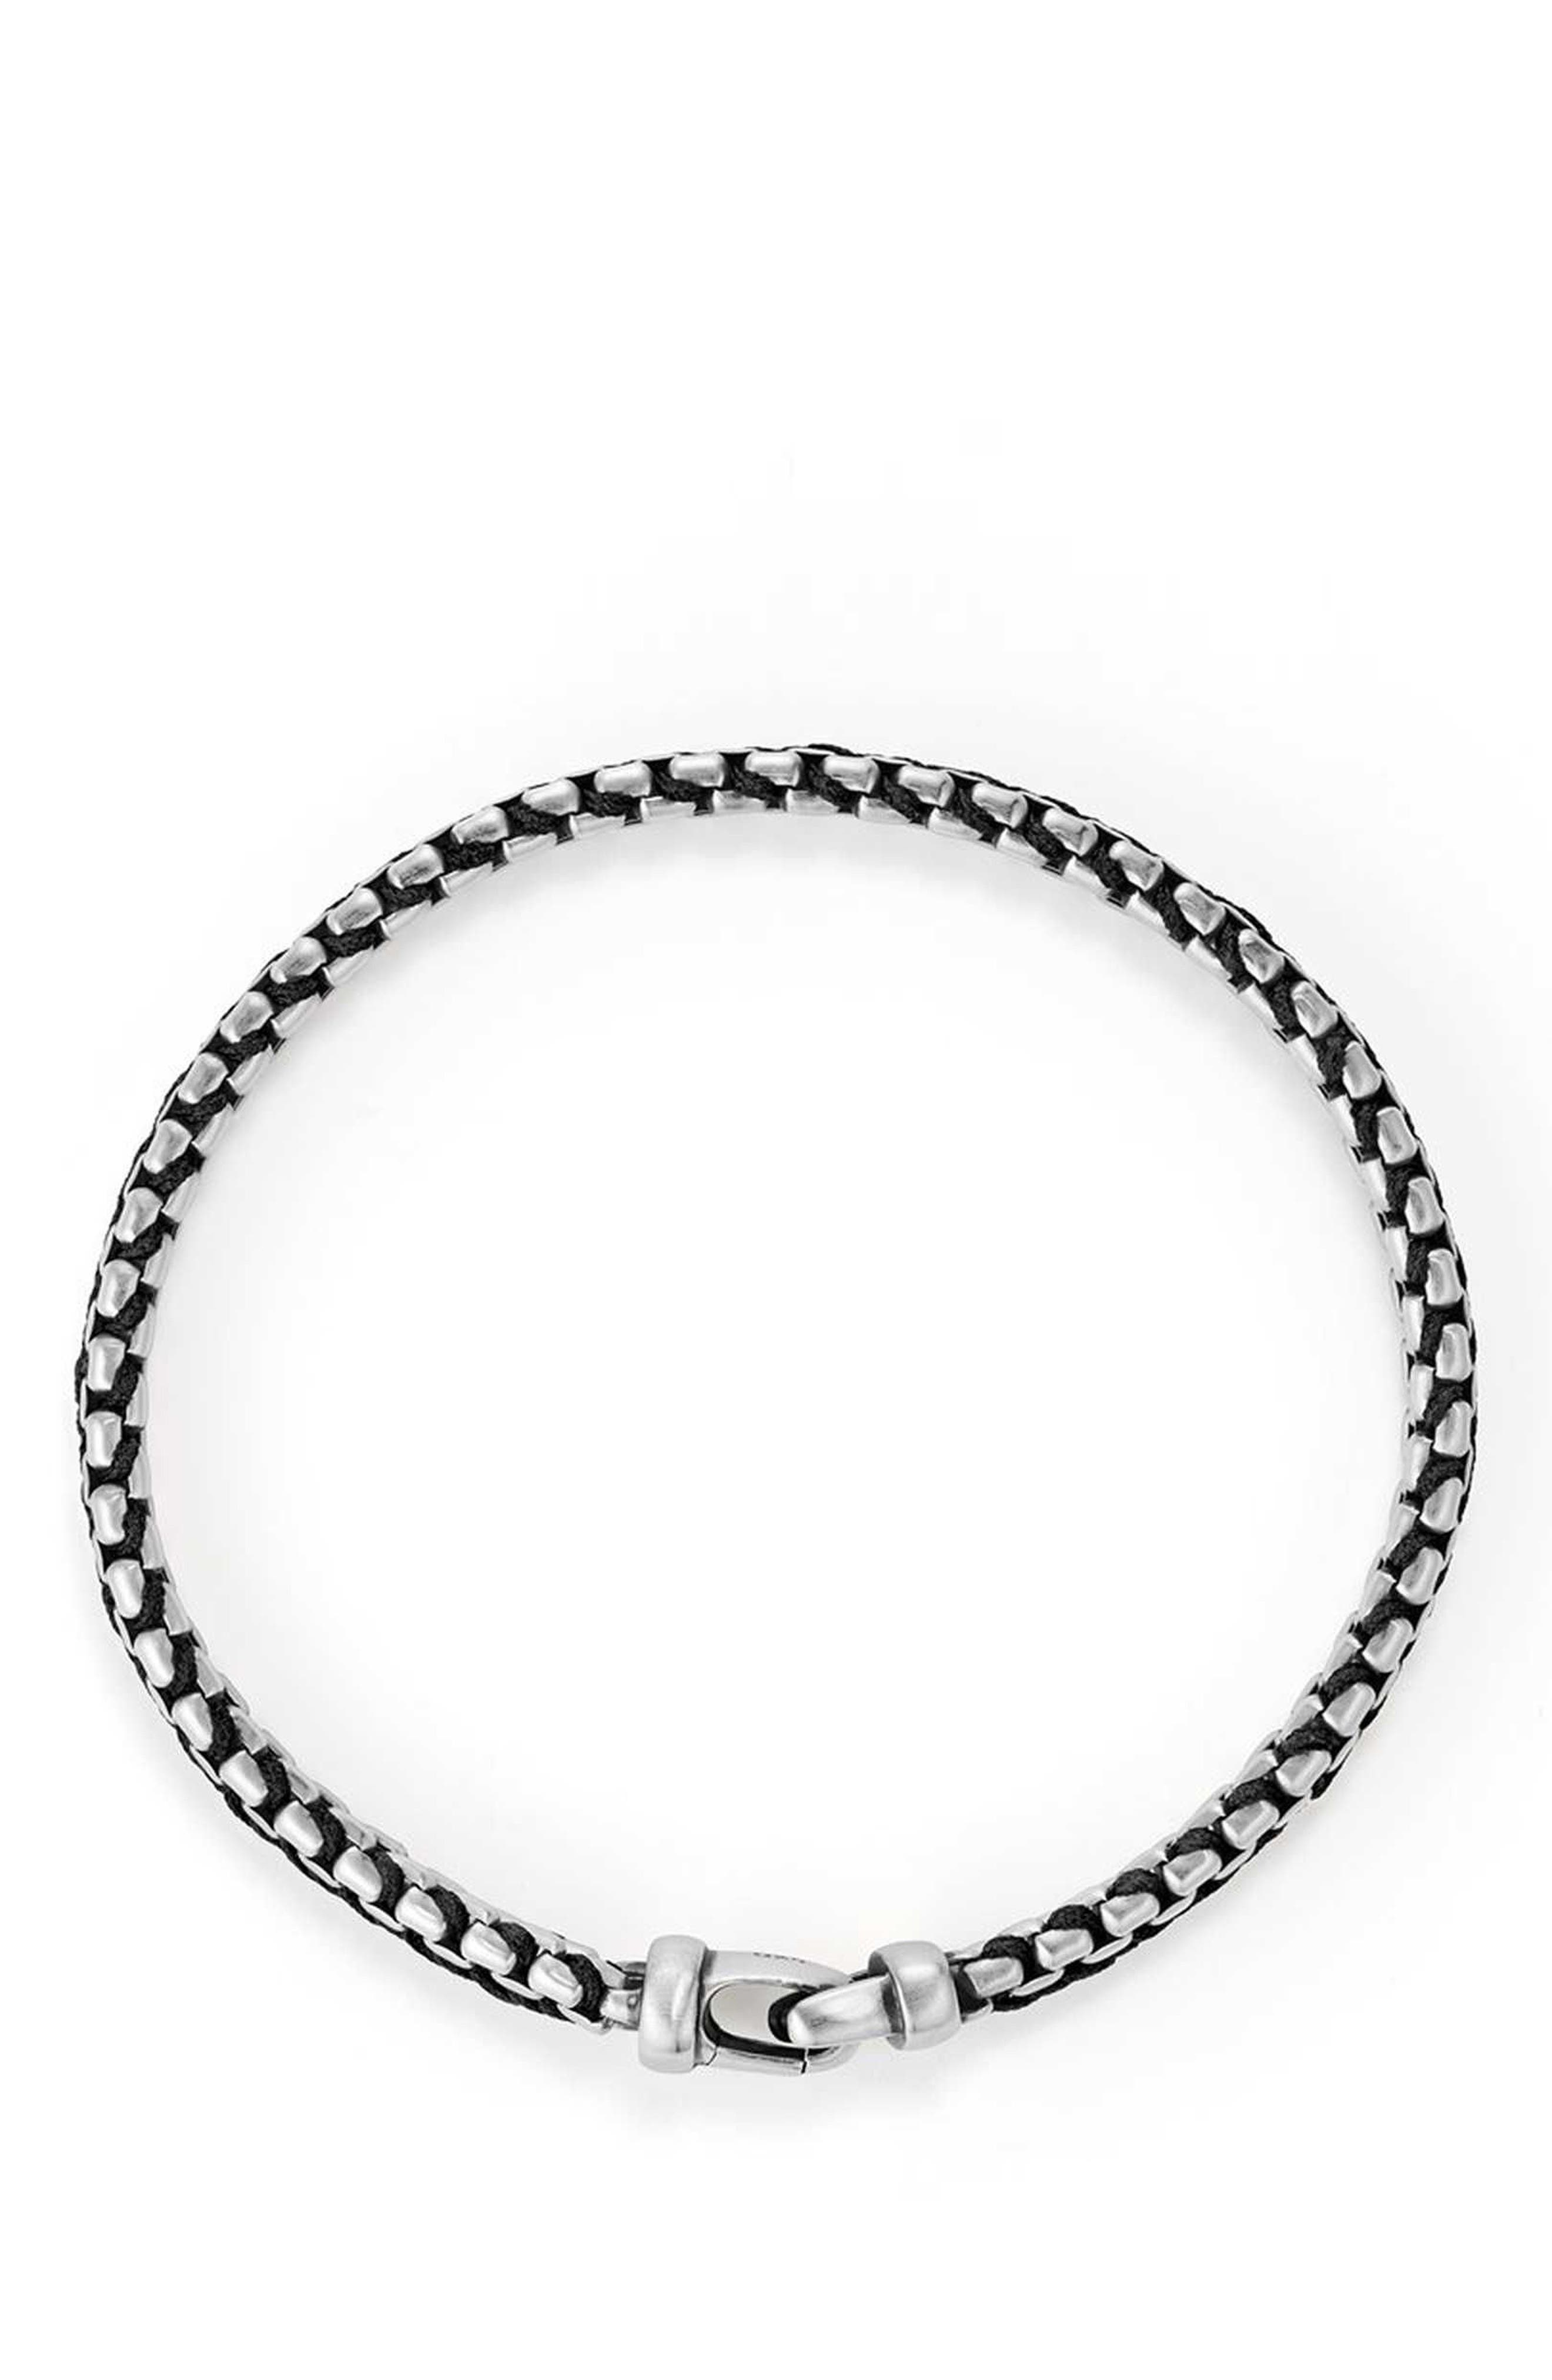 DAVID YURMAN, Woven Box Chain Bracelet, Alternate thumbnail 2, color, BLACK